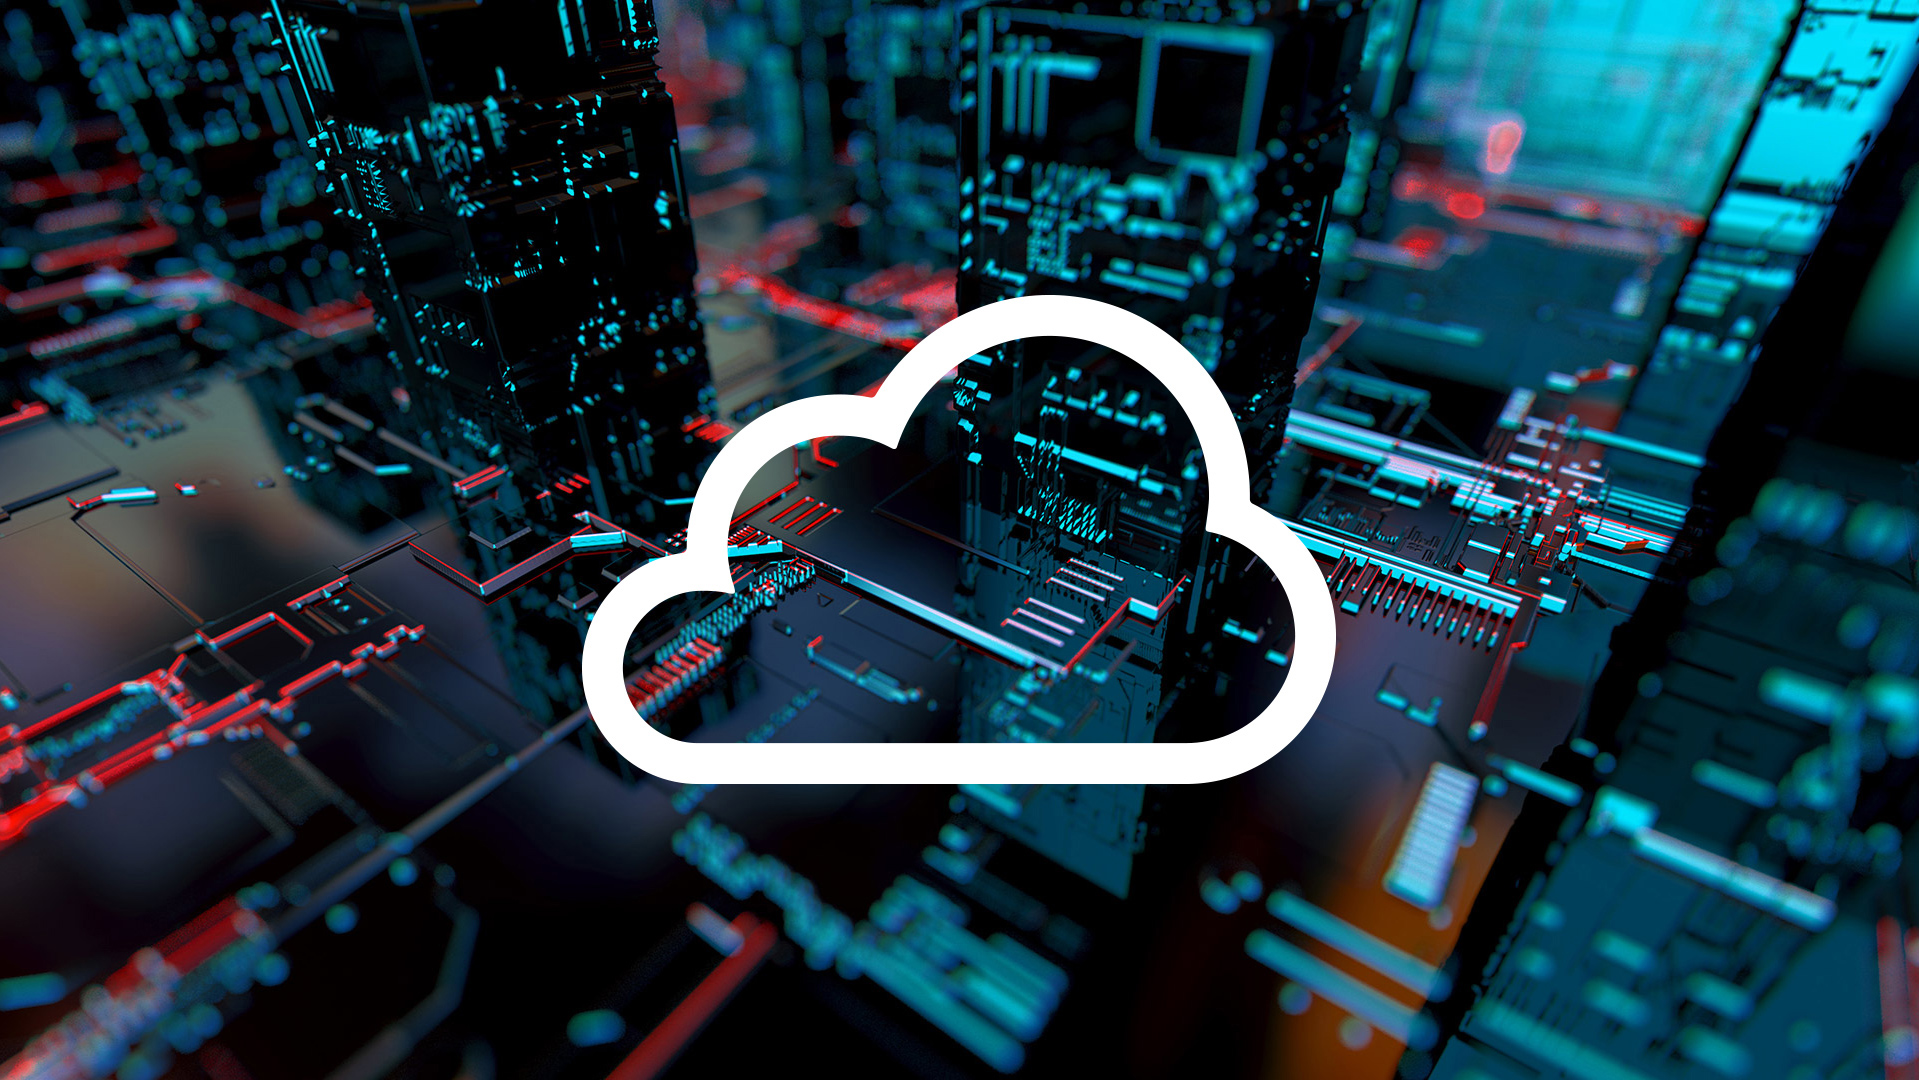 Cloud icon for AWS re:Invent 2020 announcement